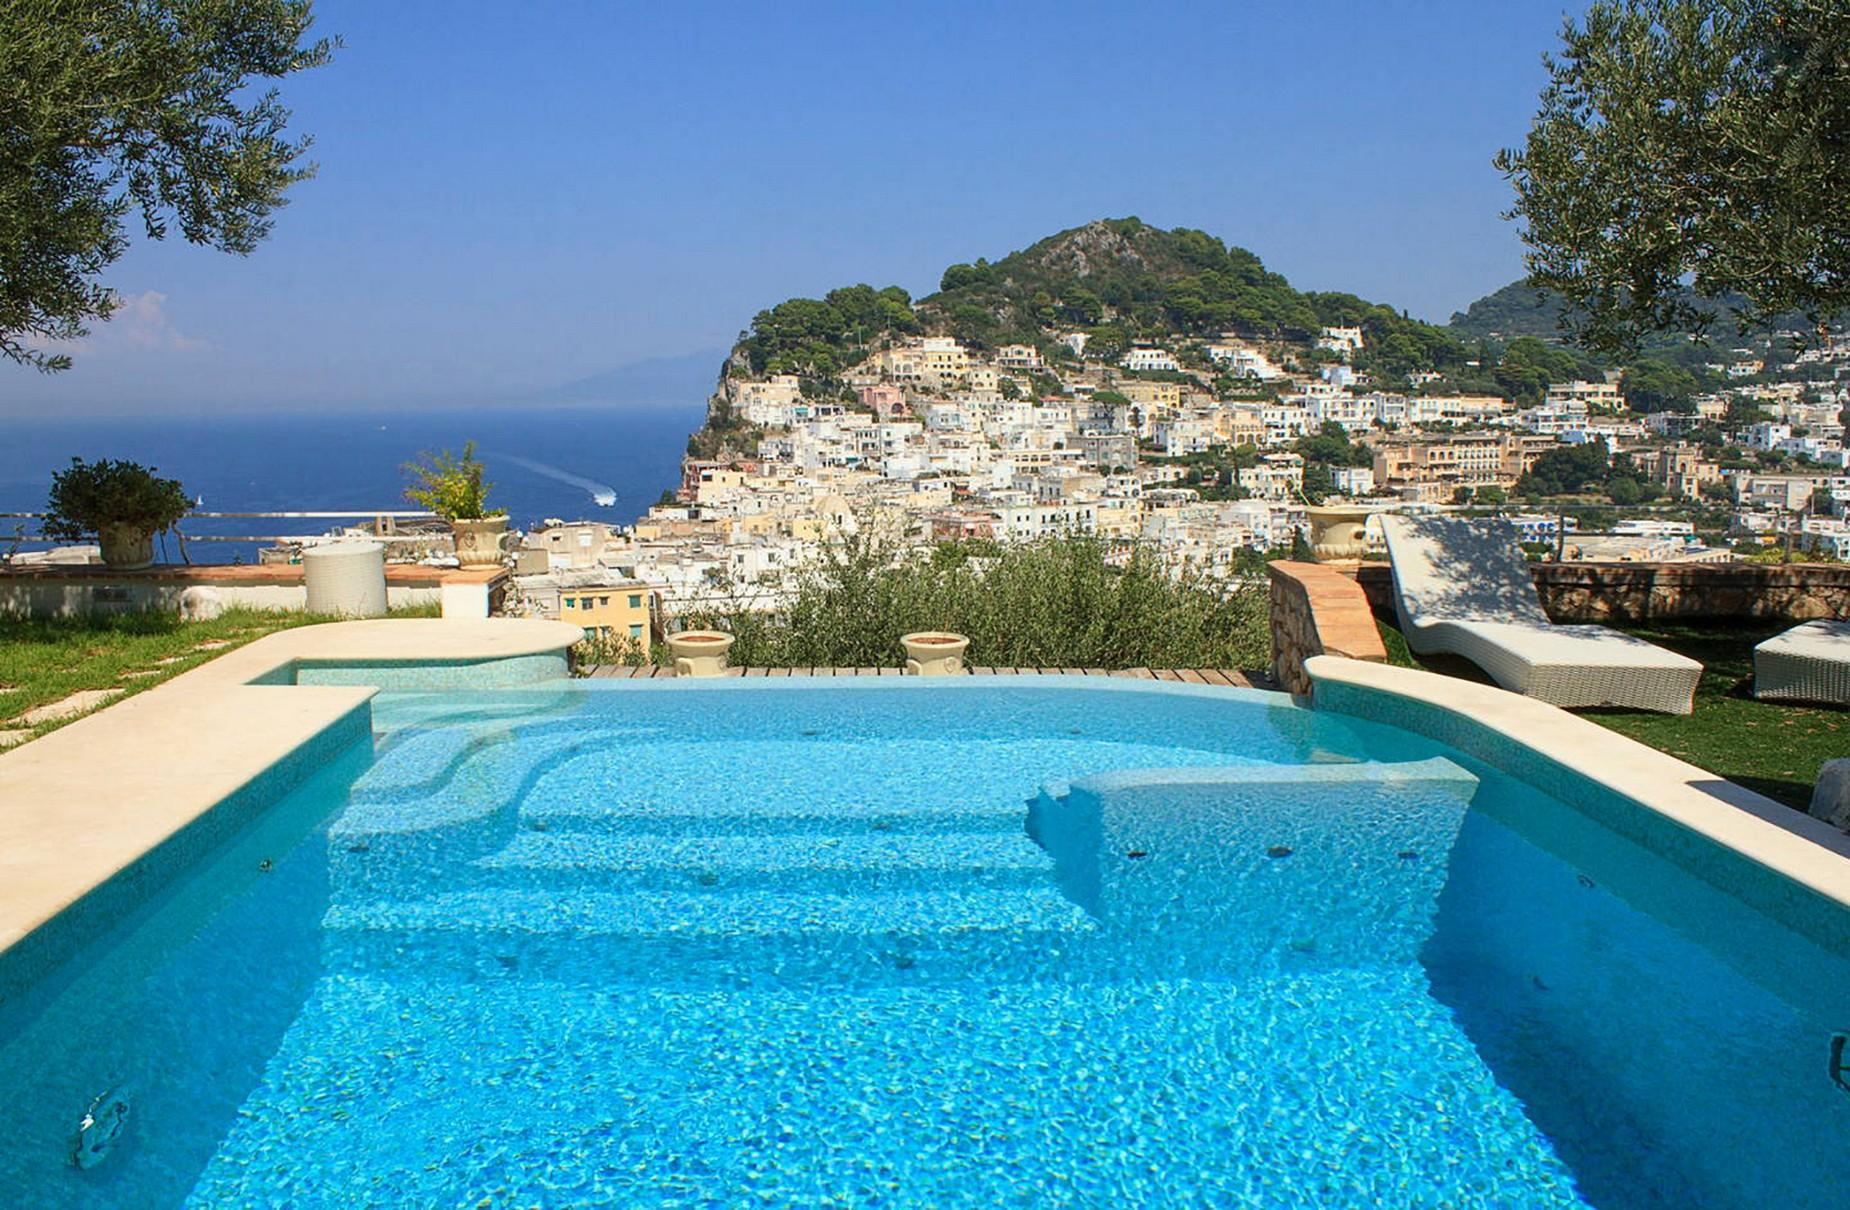 Panoramic Villa with pool in the center of Capri - 1